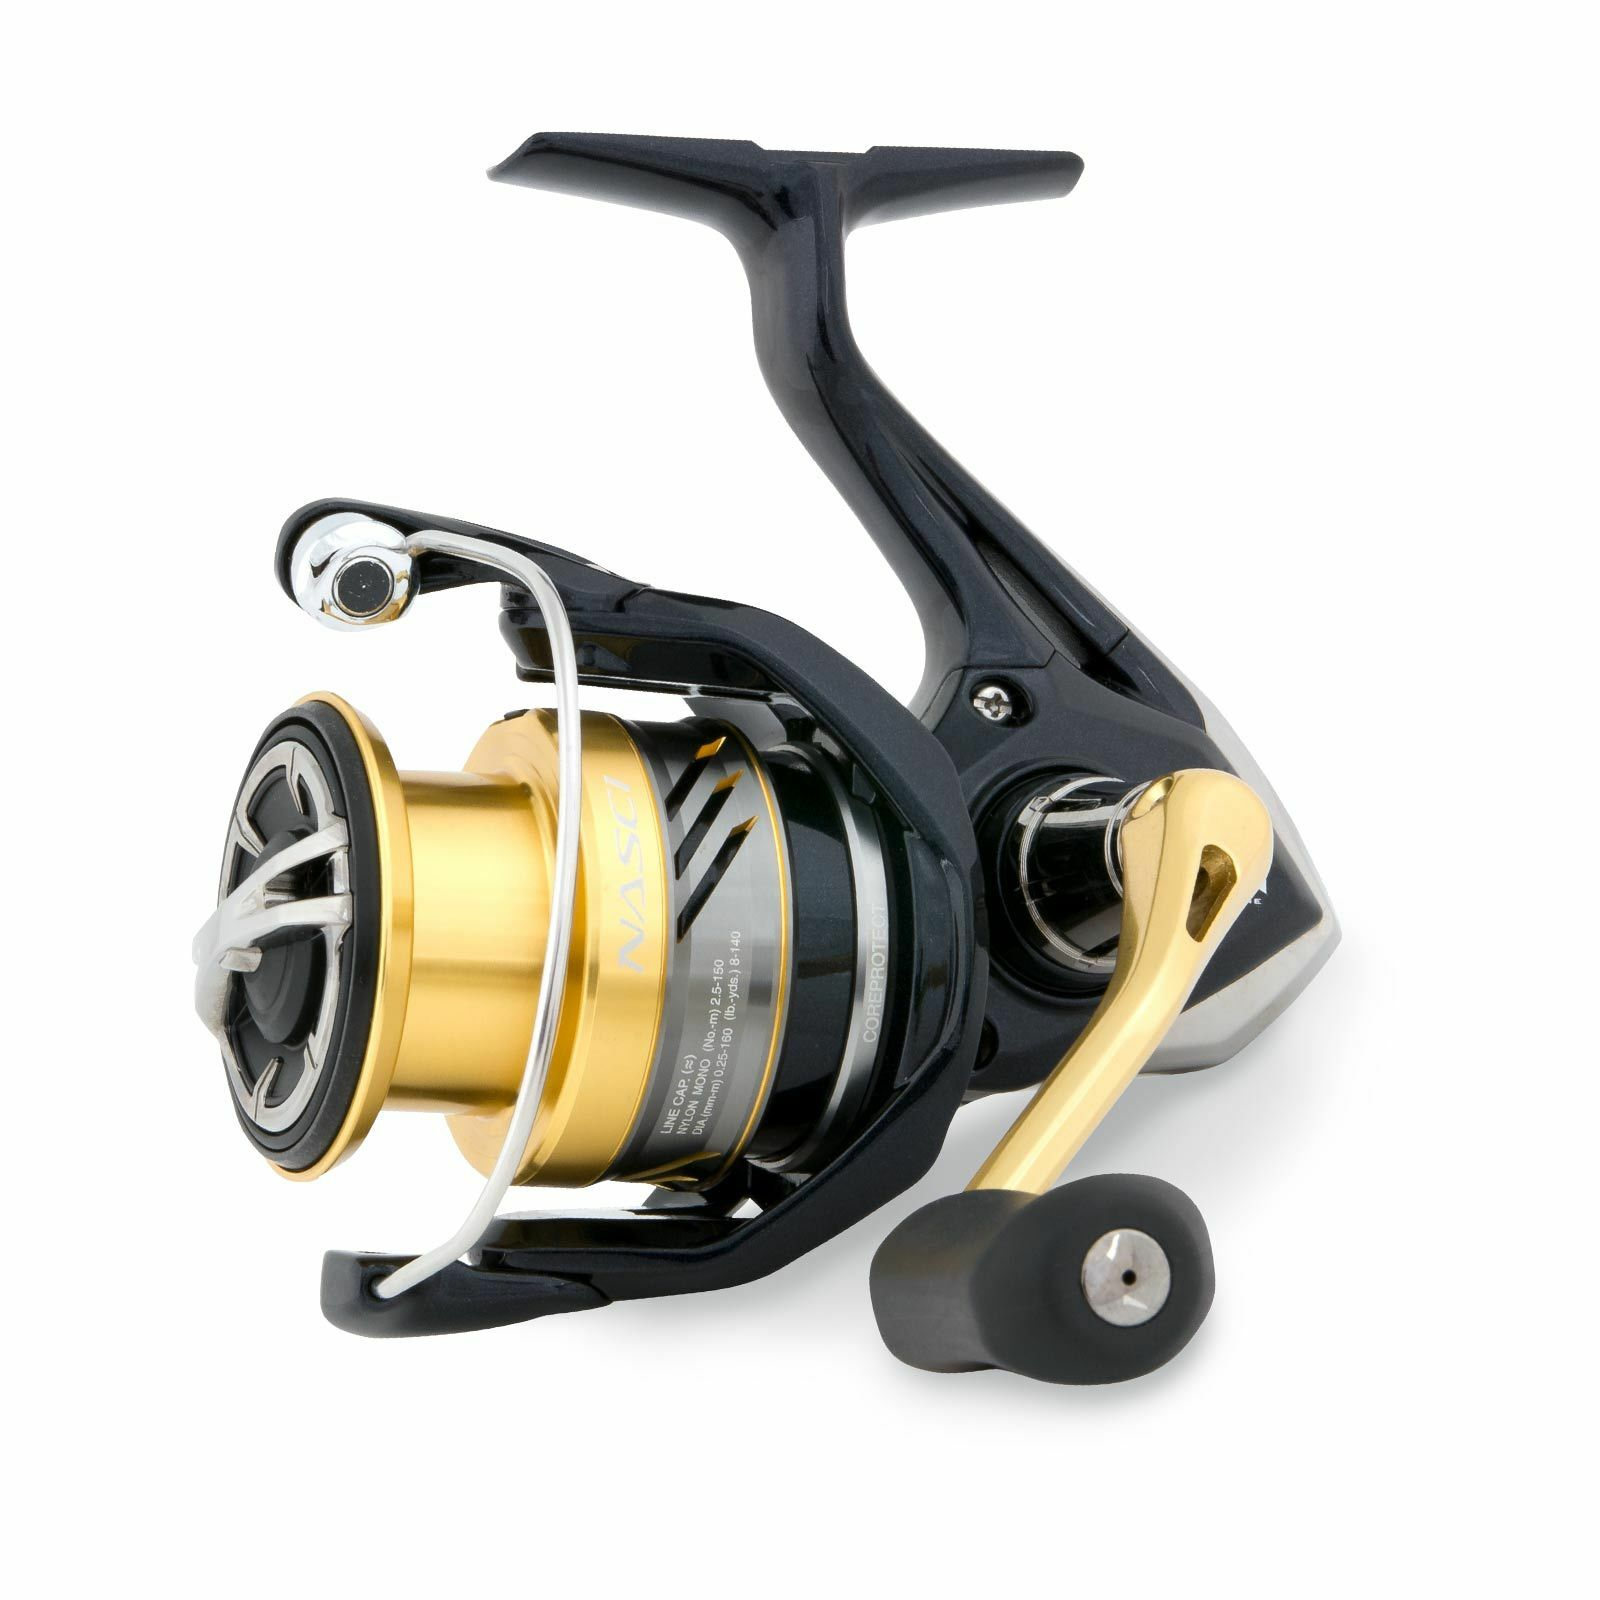 Shimano  Angelrolle Angeln - Nasci 4000 FB XG Stationärrolle mit Frontbremse